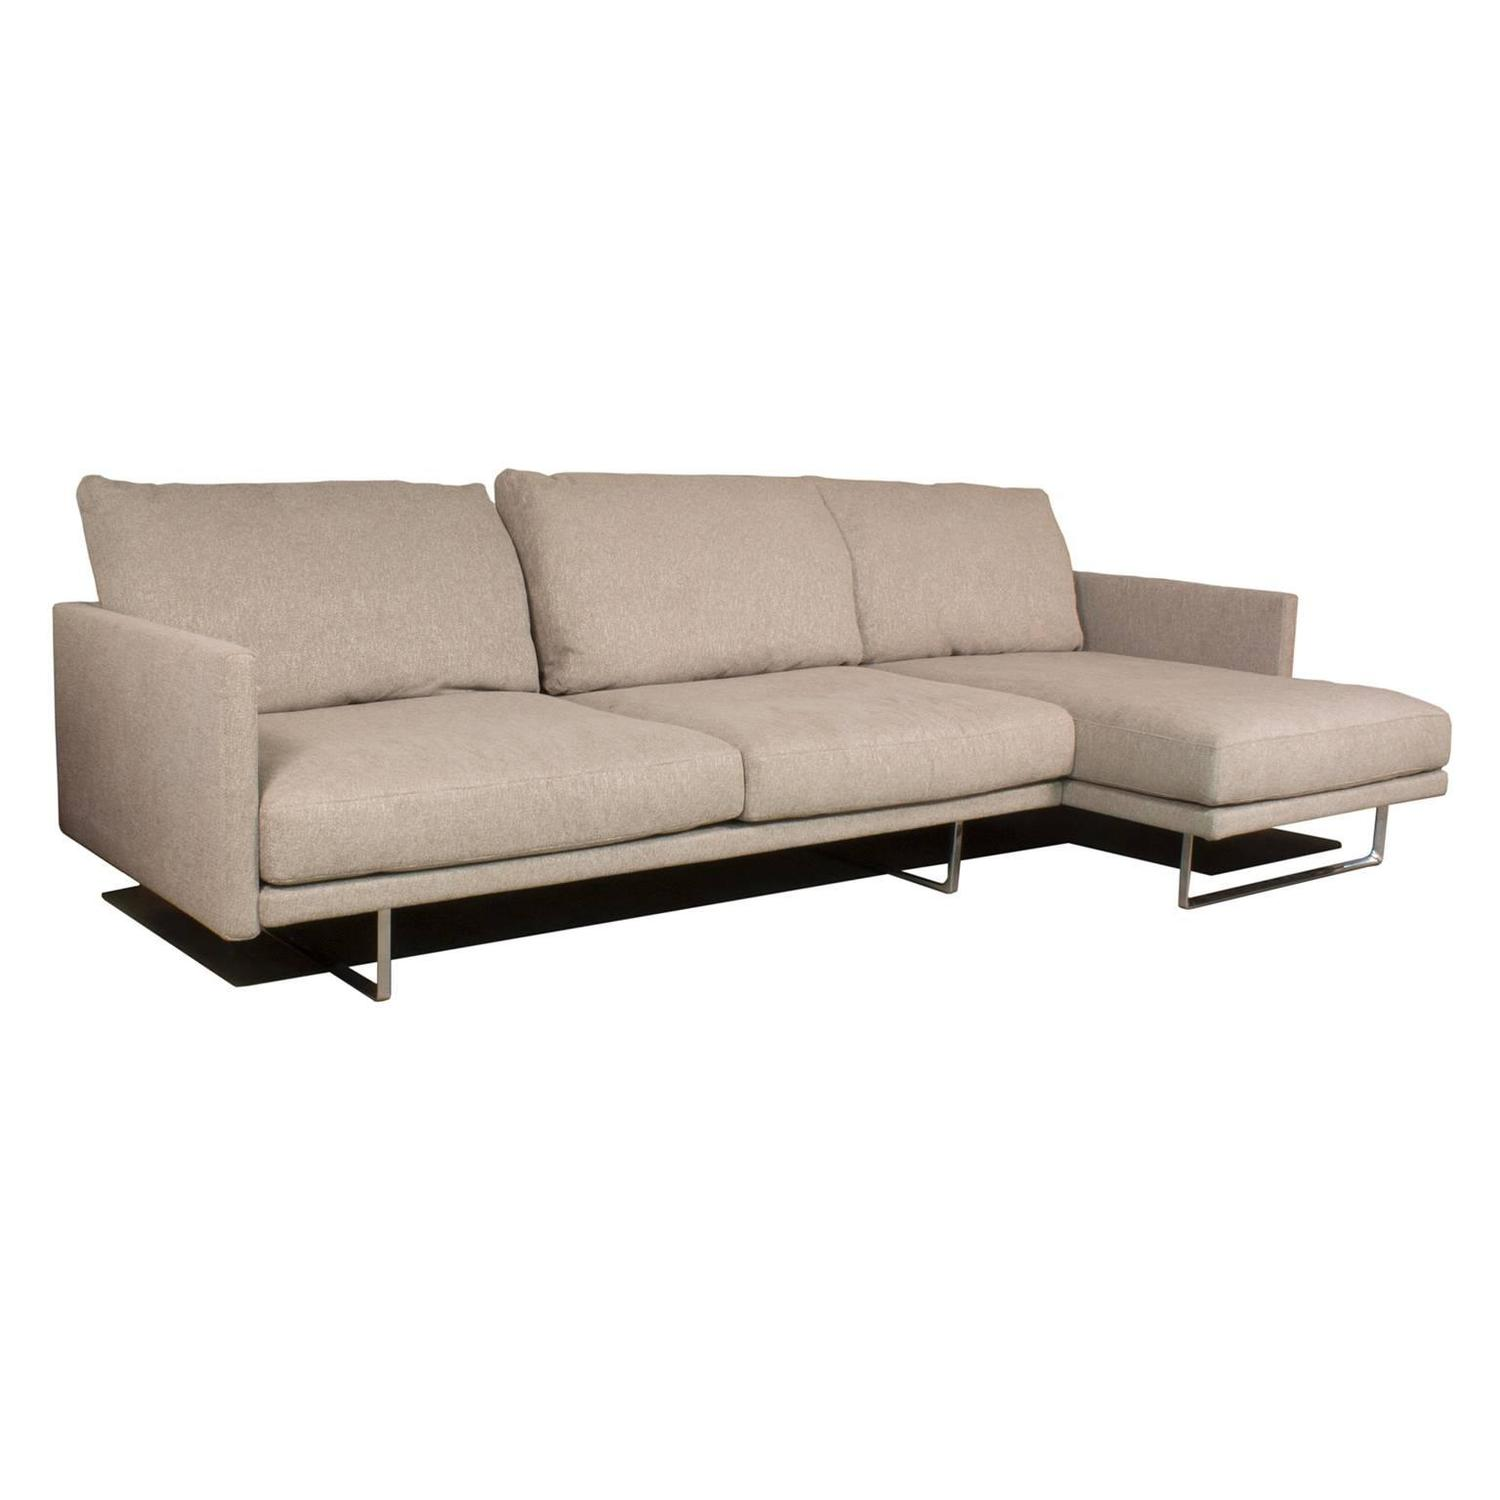 Toot sectional sofa with chaise longue by piero lissoni for Chaise lounge cassina